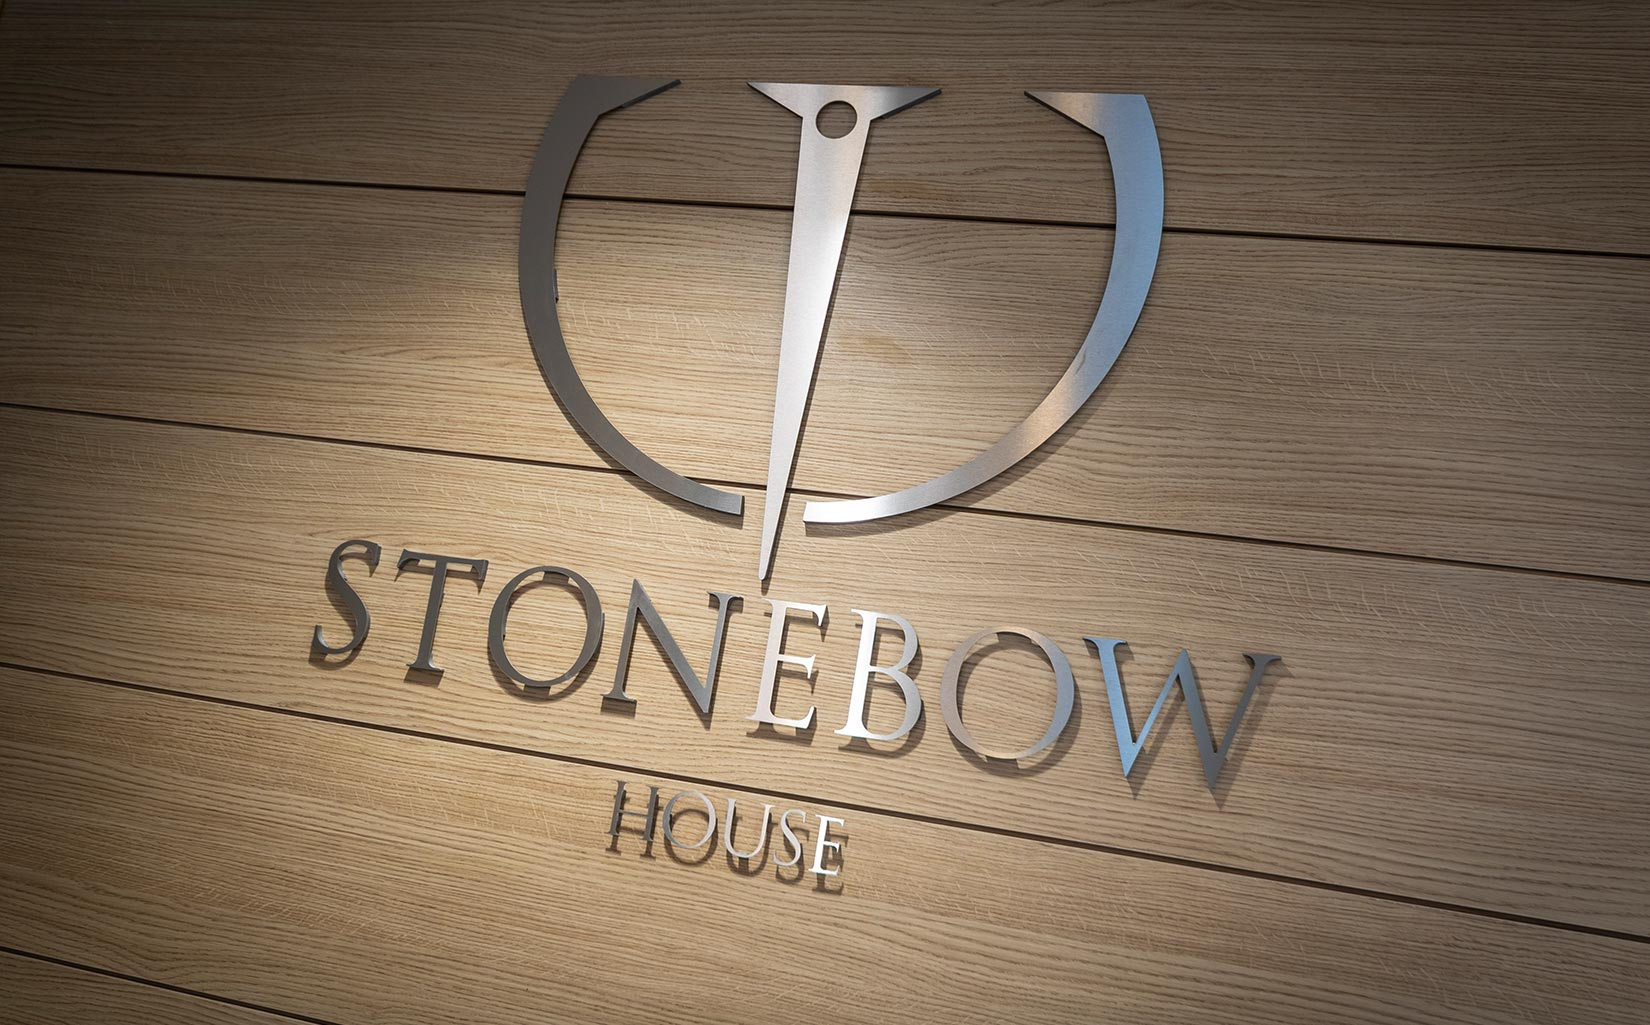 Stonebow House, York, Stonebow, York : Branding - Photograph © Oakgate Developments Plc